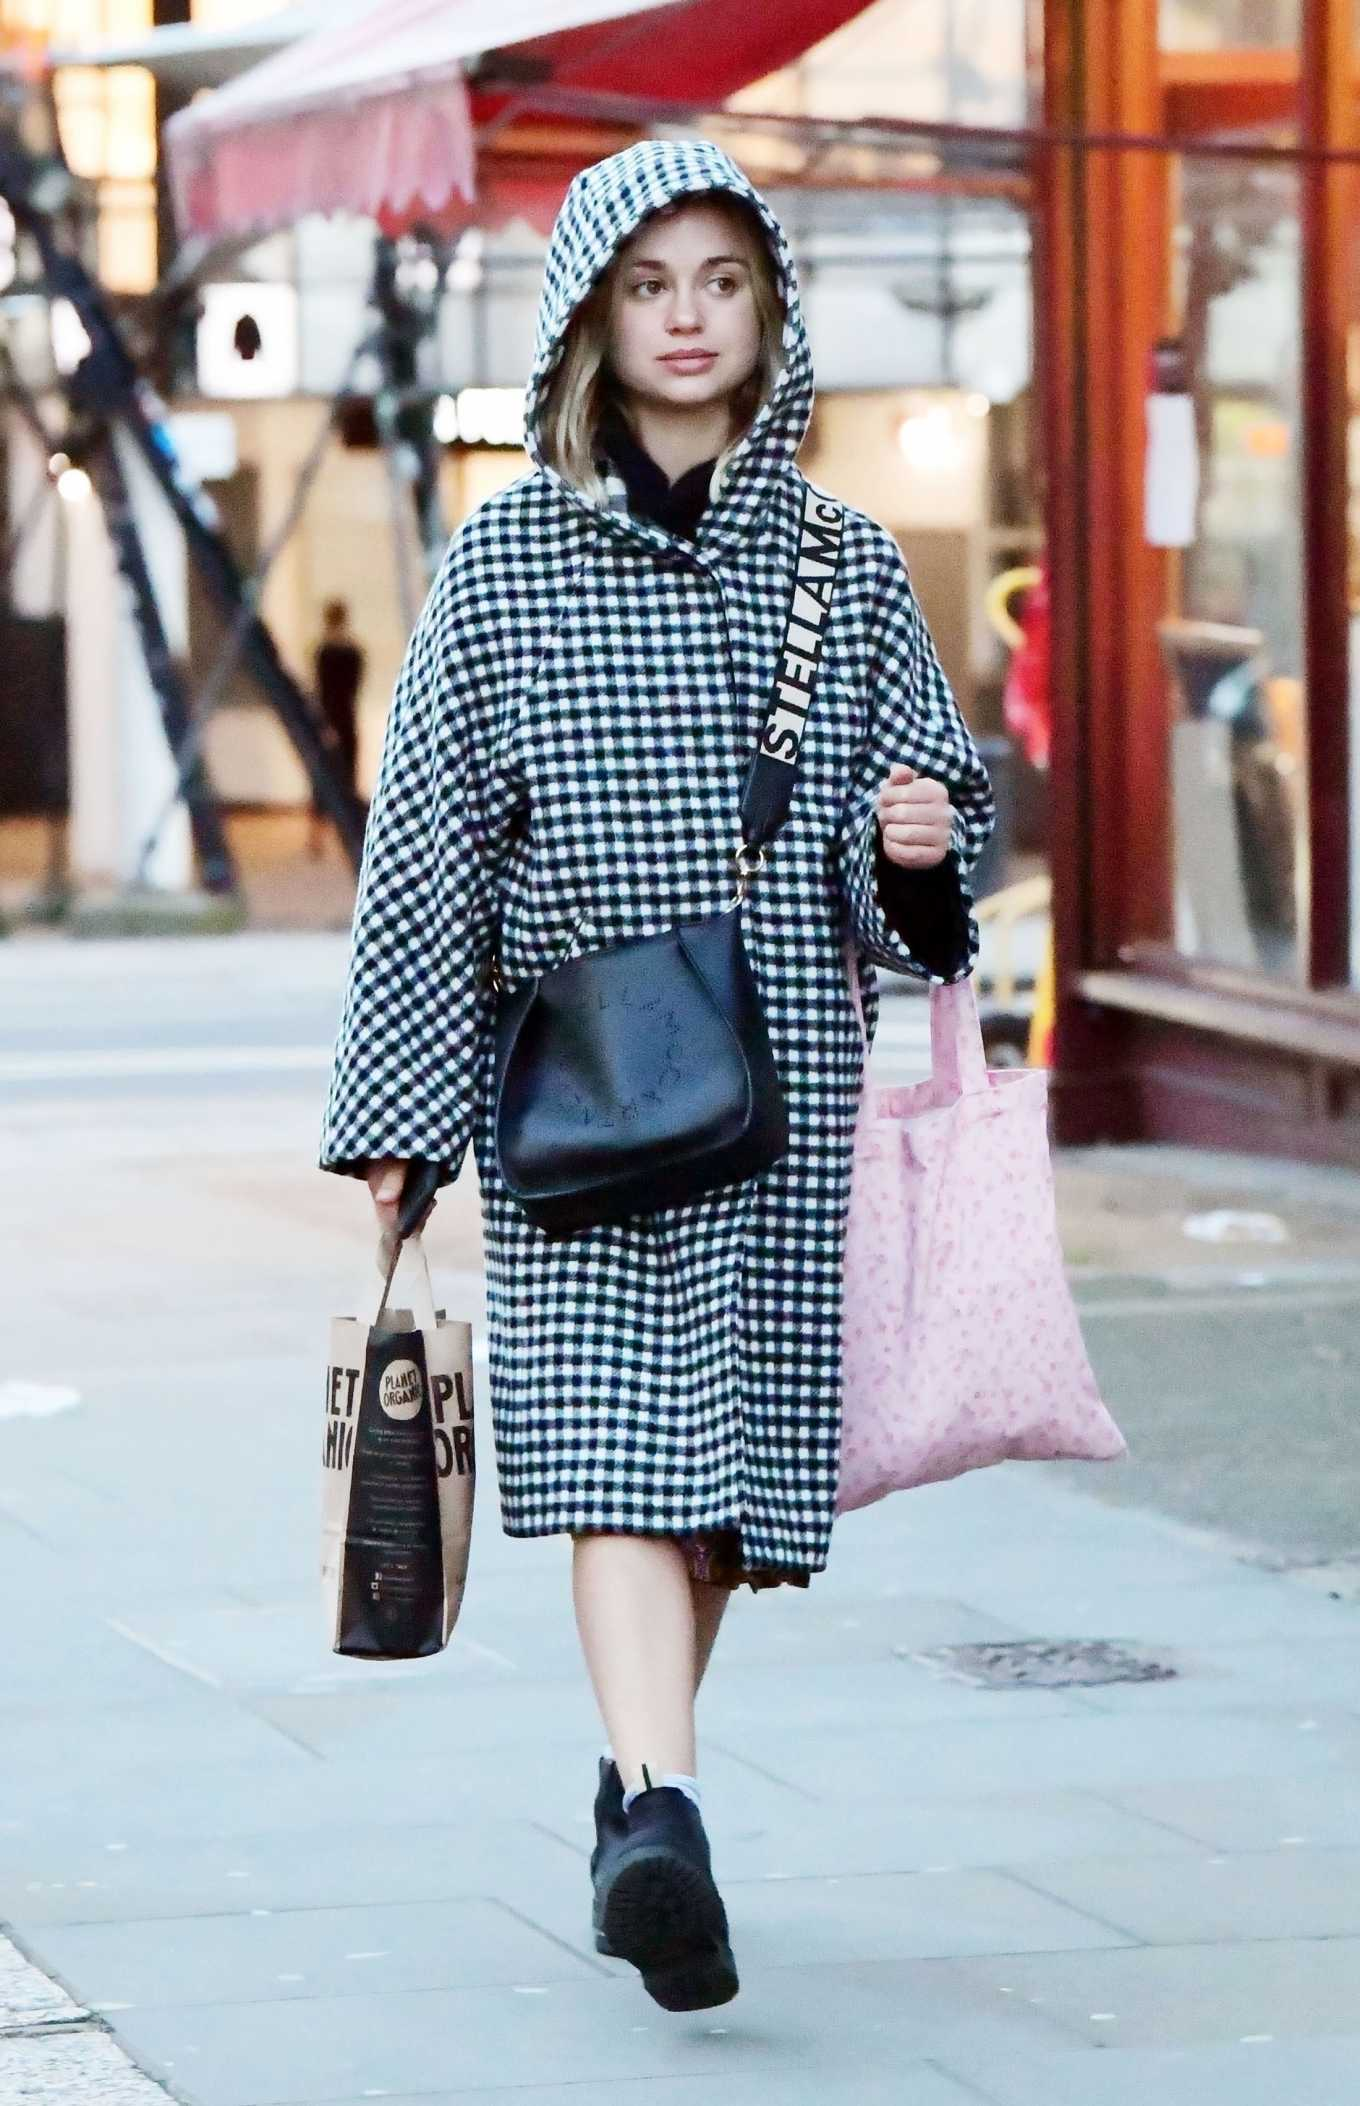 Amelia Windsor 2020 : Amelia Windsor – Looks stylis while out in the trendy area of Notting Hill-14